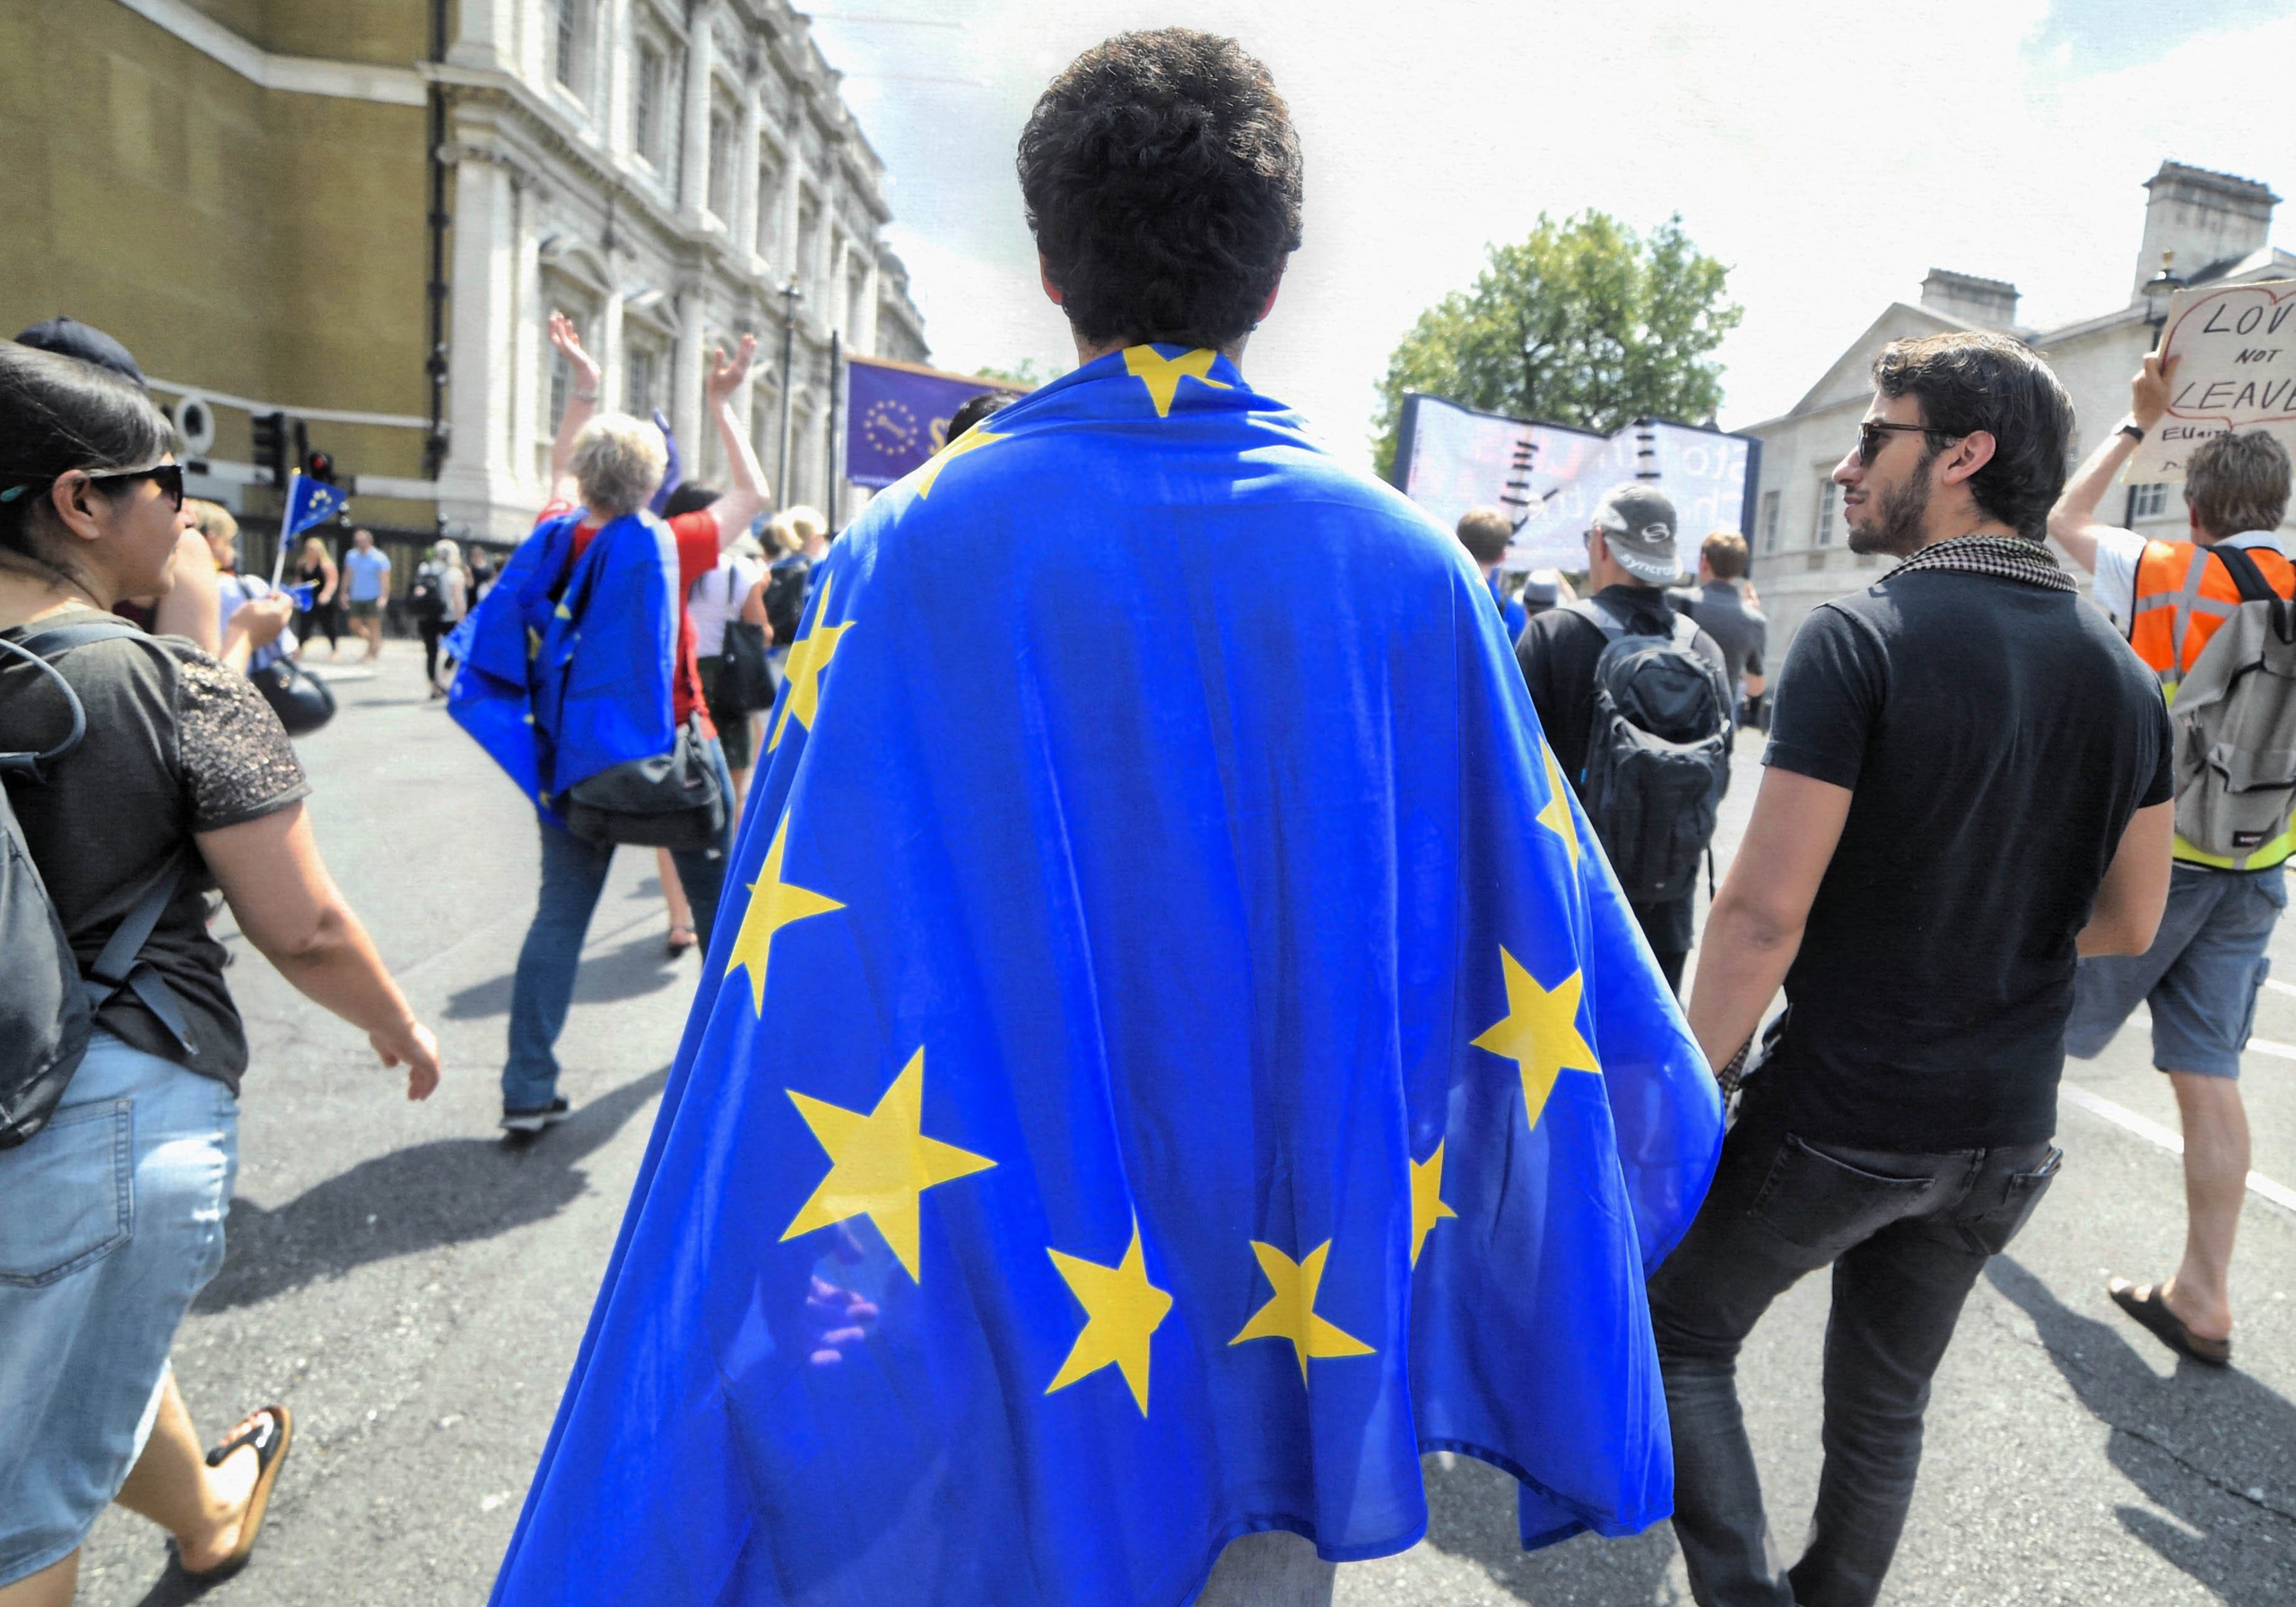 Hundreds of Pro-European campaigners marched to 10 Downing Street in London on  July 23, 2016.